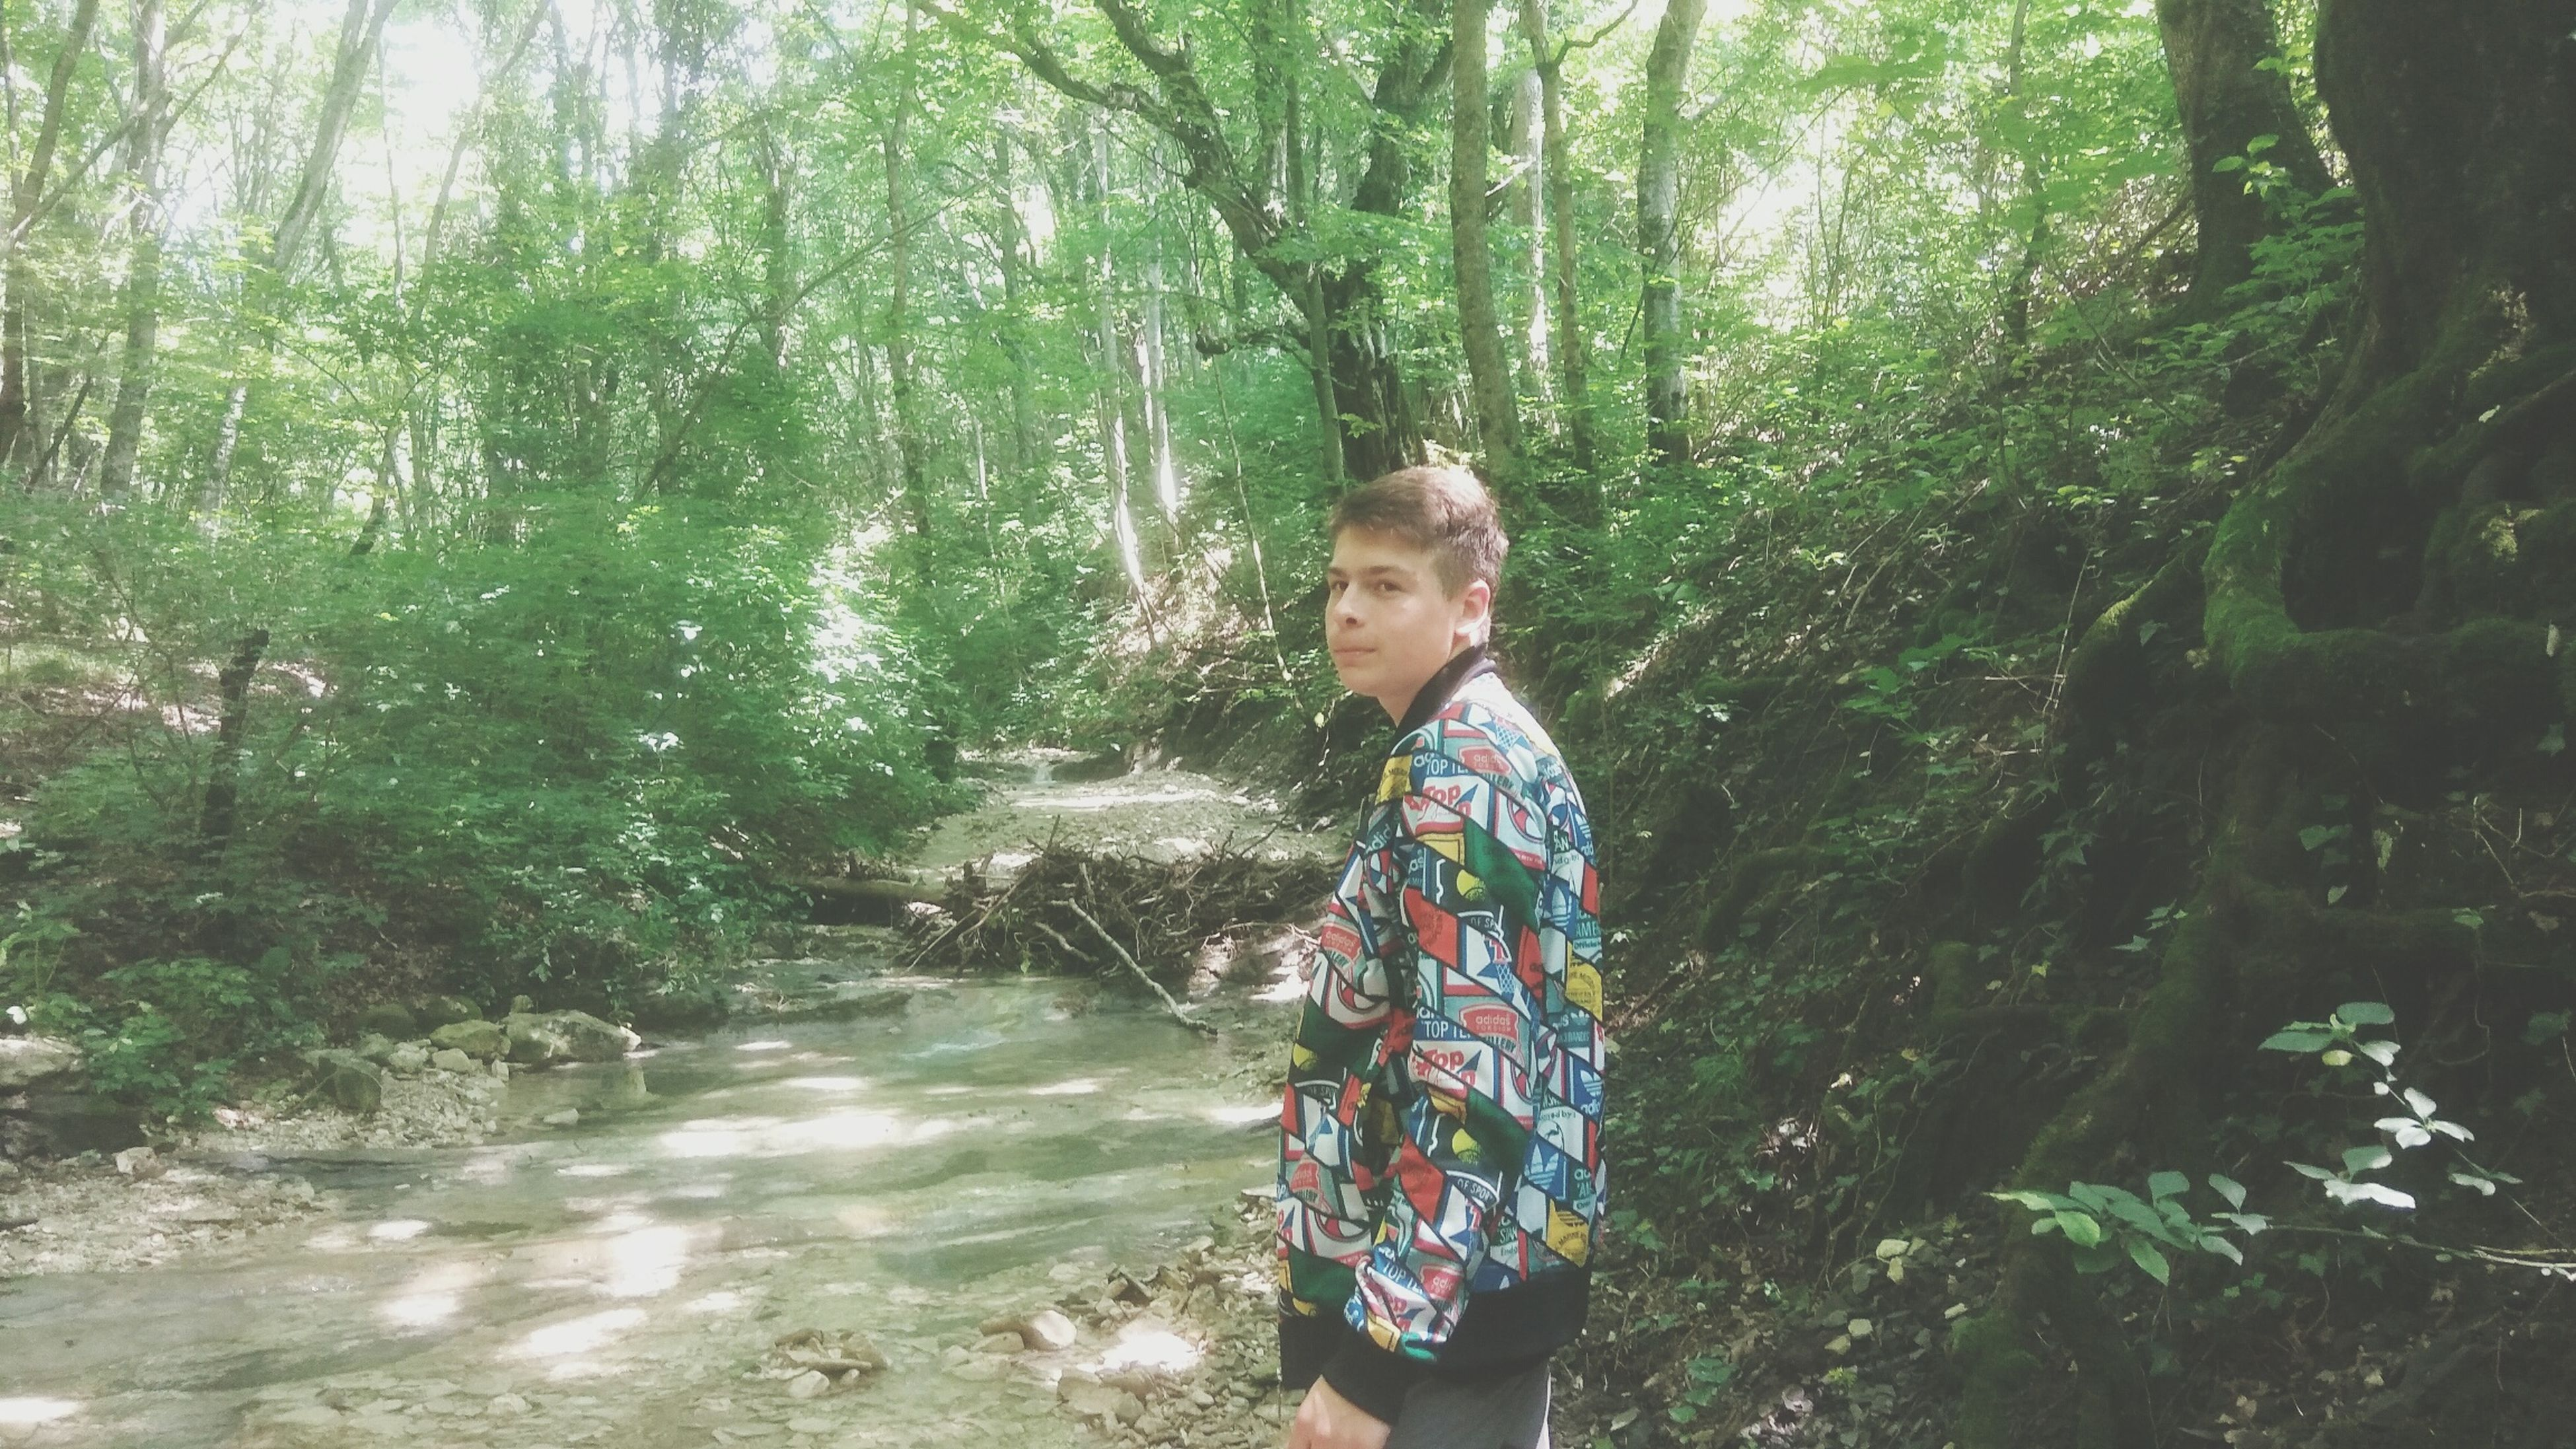 tree, forest, real people, young adult, one person, nature, day, outdoors, leisure activity, lifestyles, standing, young women, casual clothing, young men, growth, plant, smiling, happiness, scenics, beauty in nature, water, people